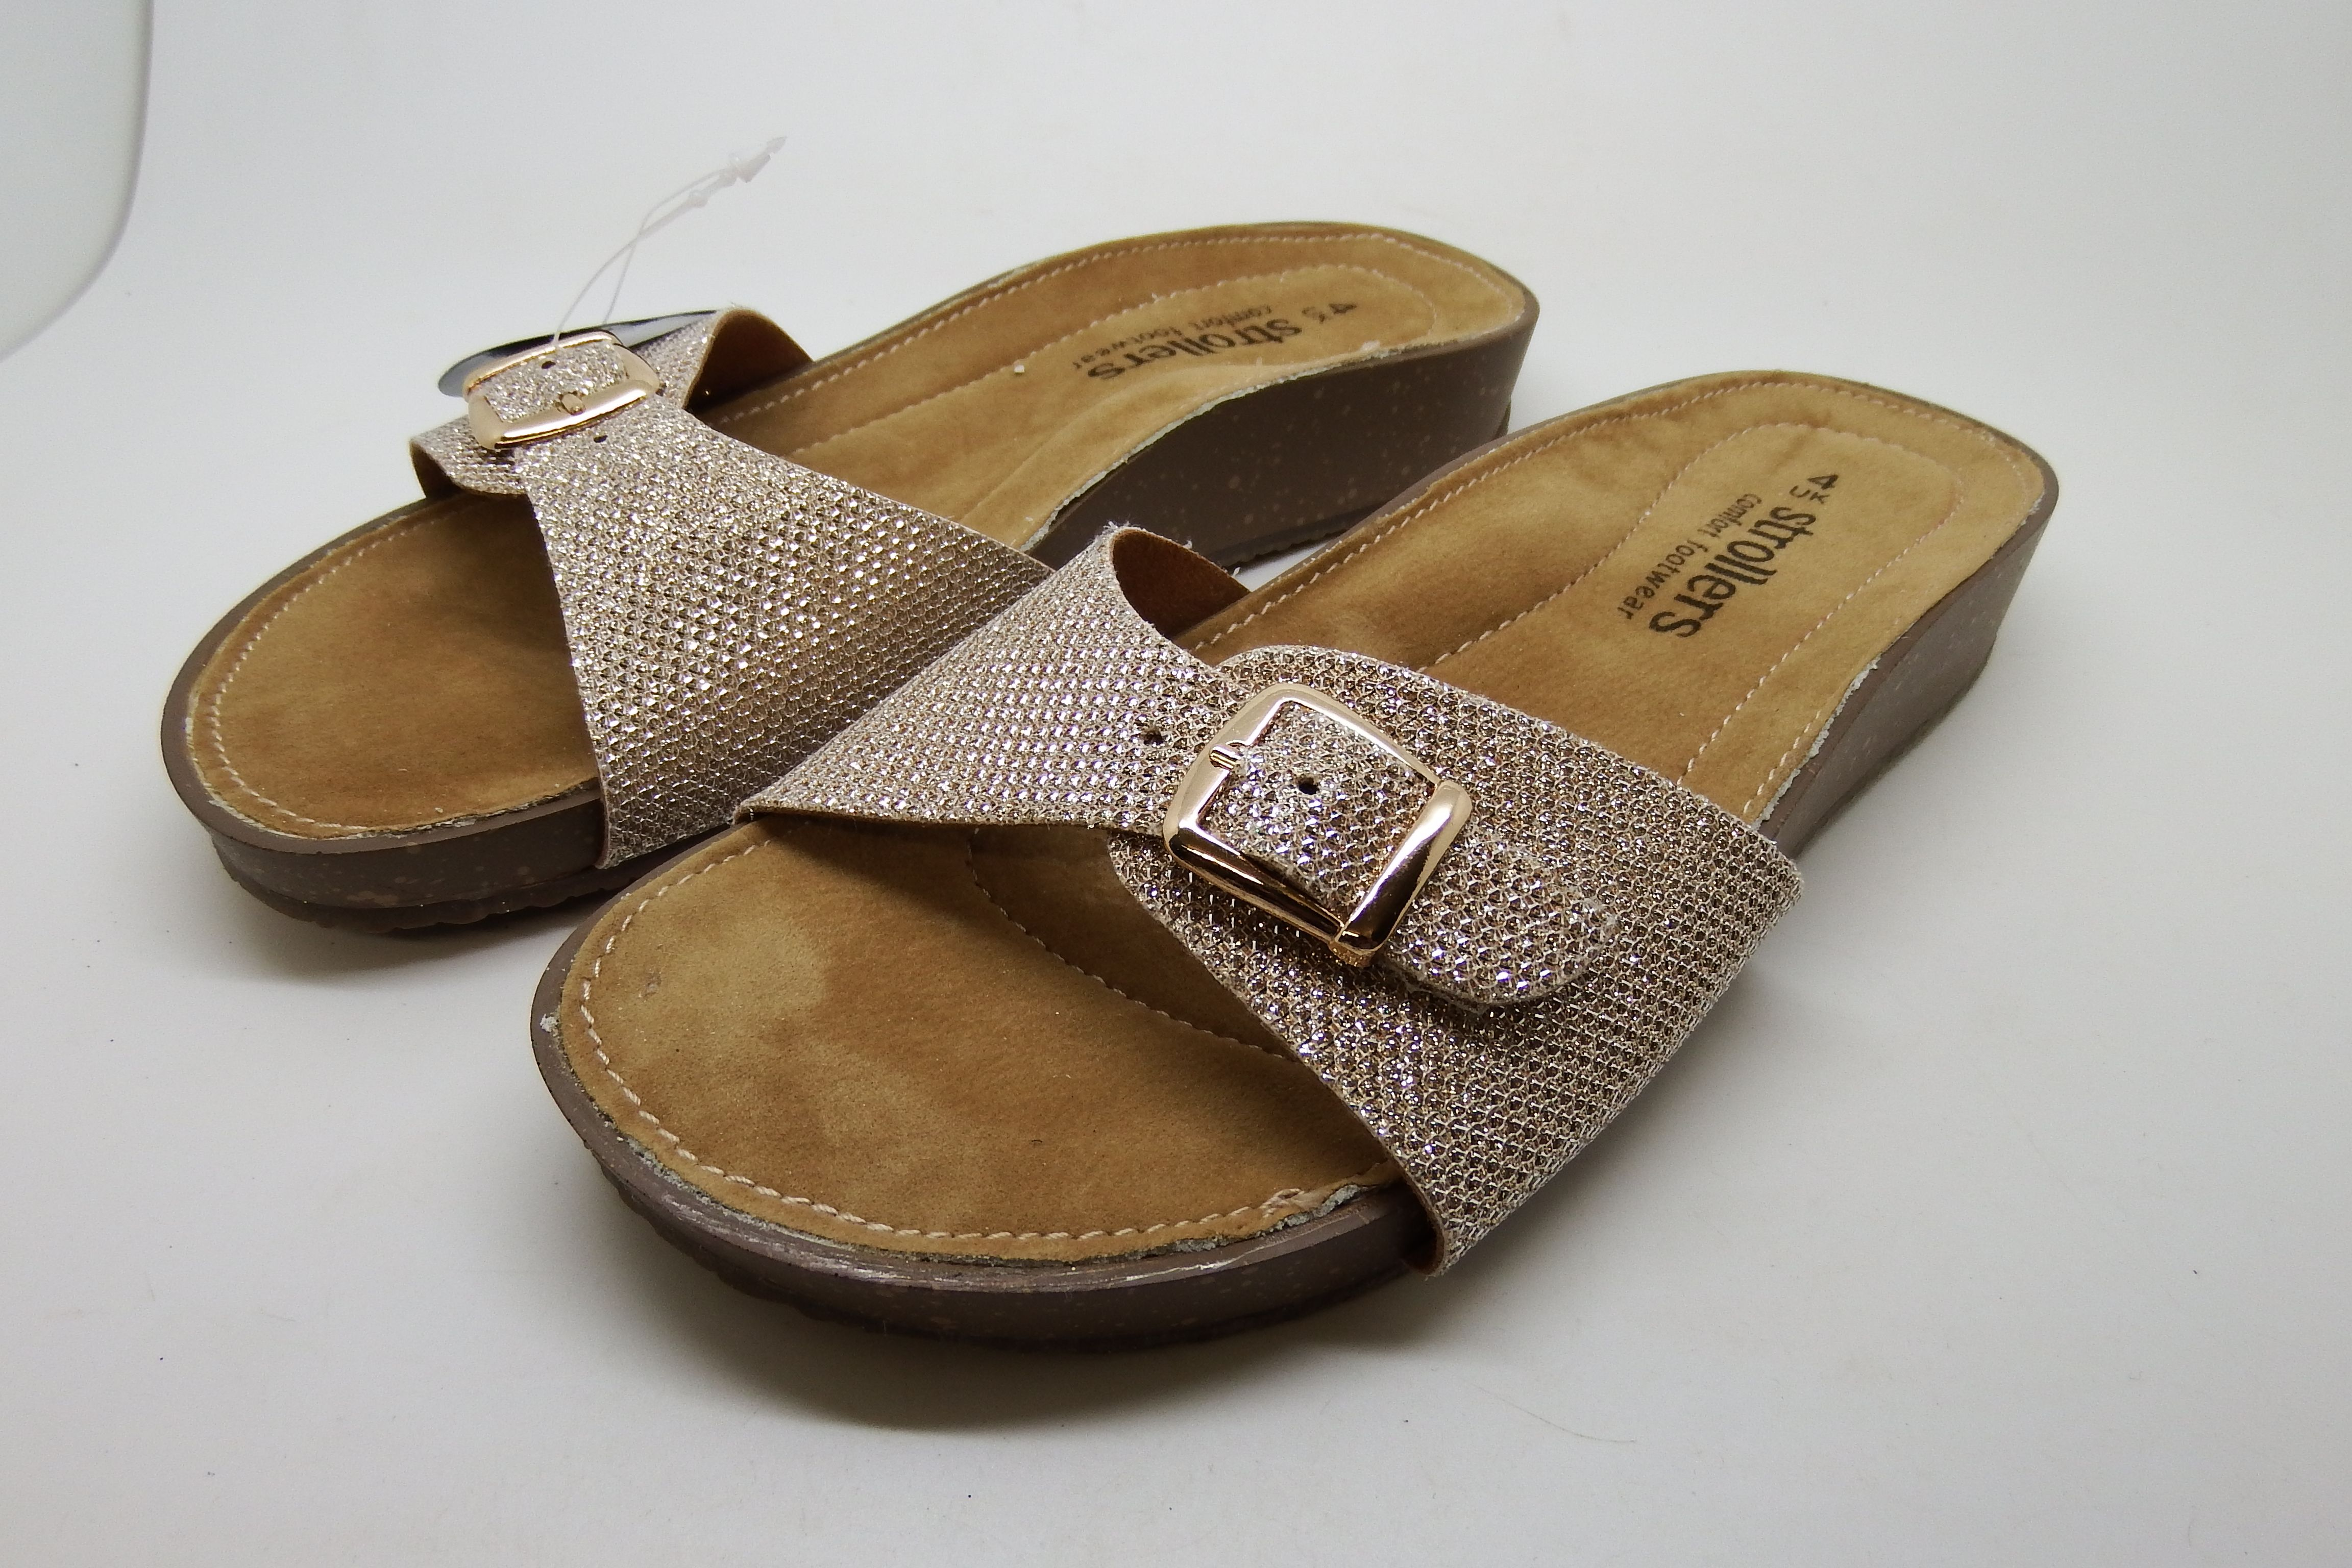 NEW LADIES STROLLERS COMFORT FOOTBED SLIDERS SANDALS SPARKLY GOLD SLIDES SZ 3 4